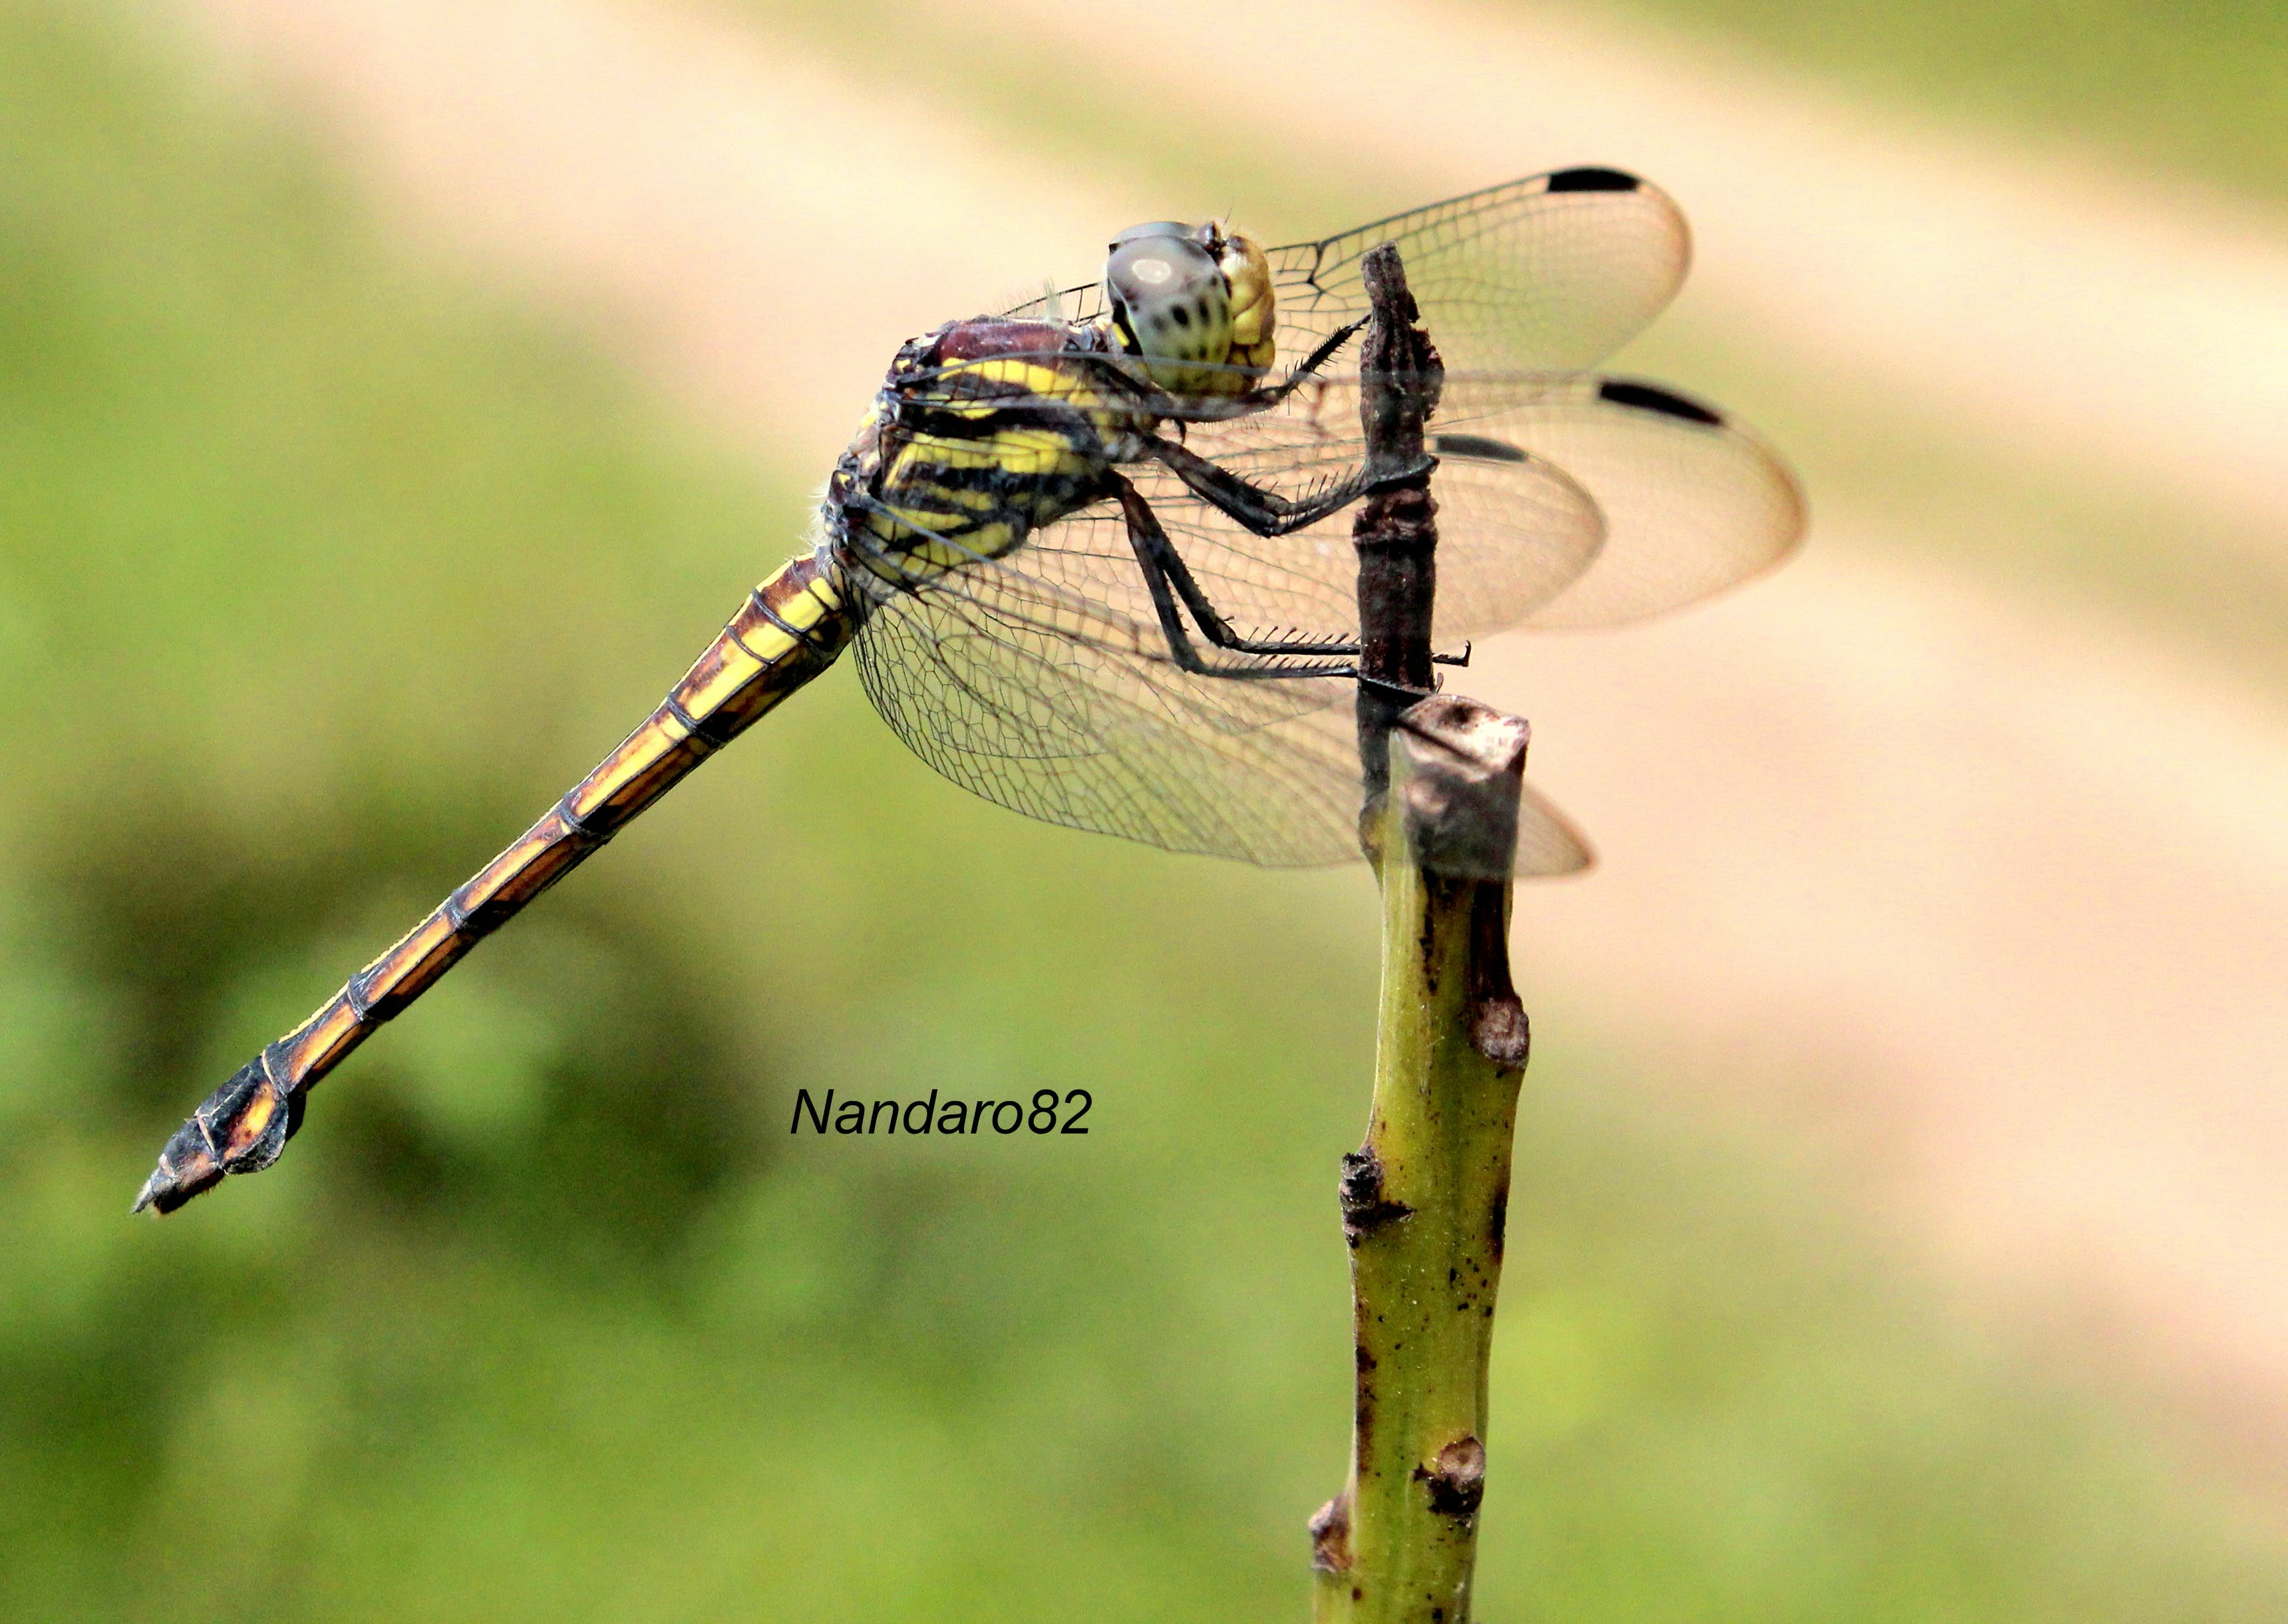 Free stock photo of #animal, #buffalo, close-up dragonfly insect little macro wings